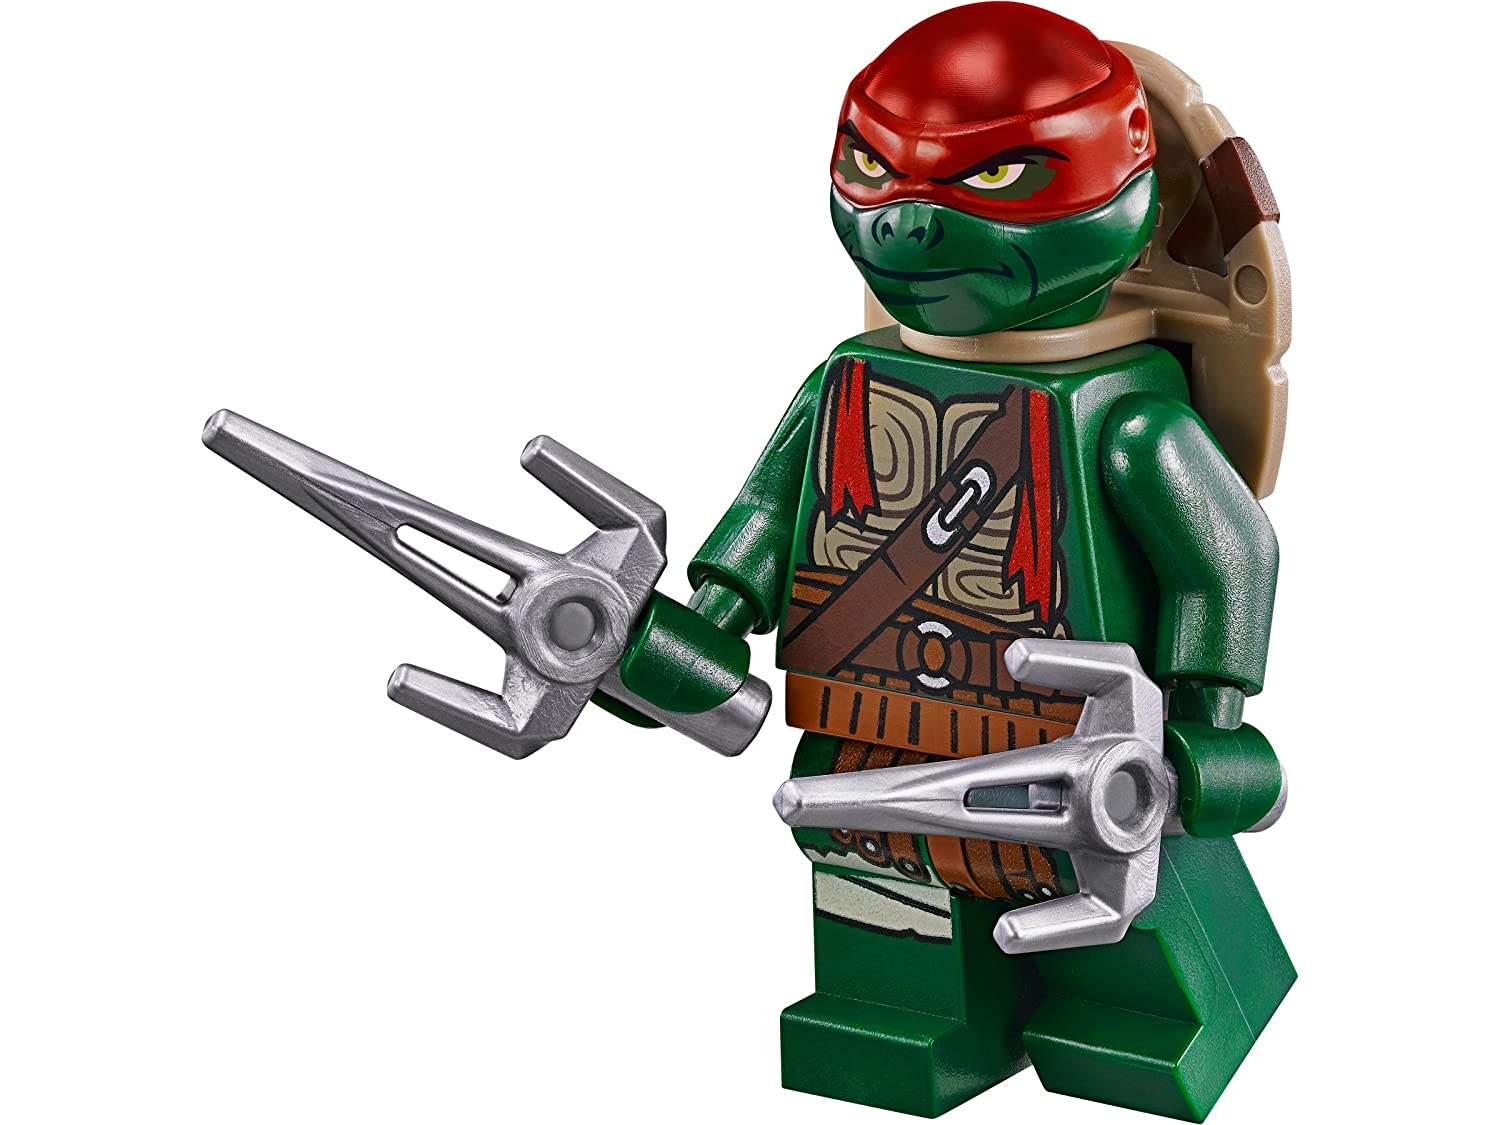 Amazon.com: Lego Mutant Ninja Turtles Turtles van takedown ...